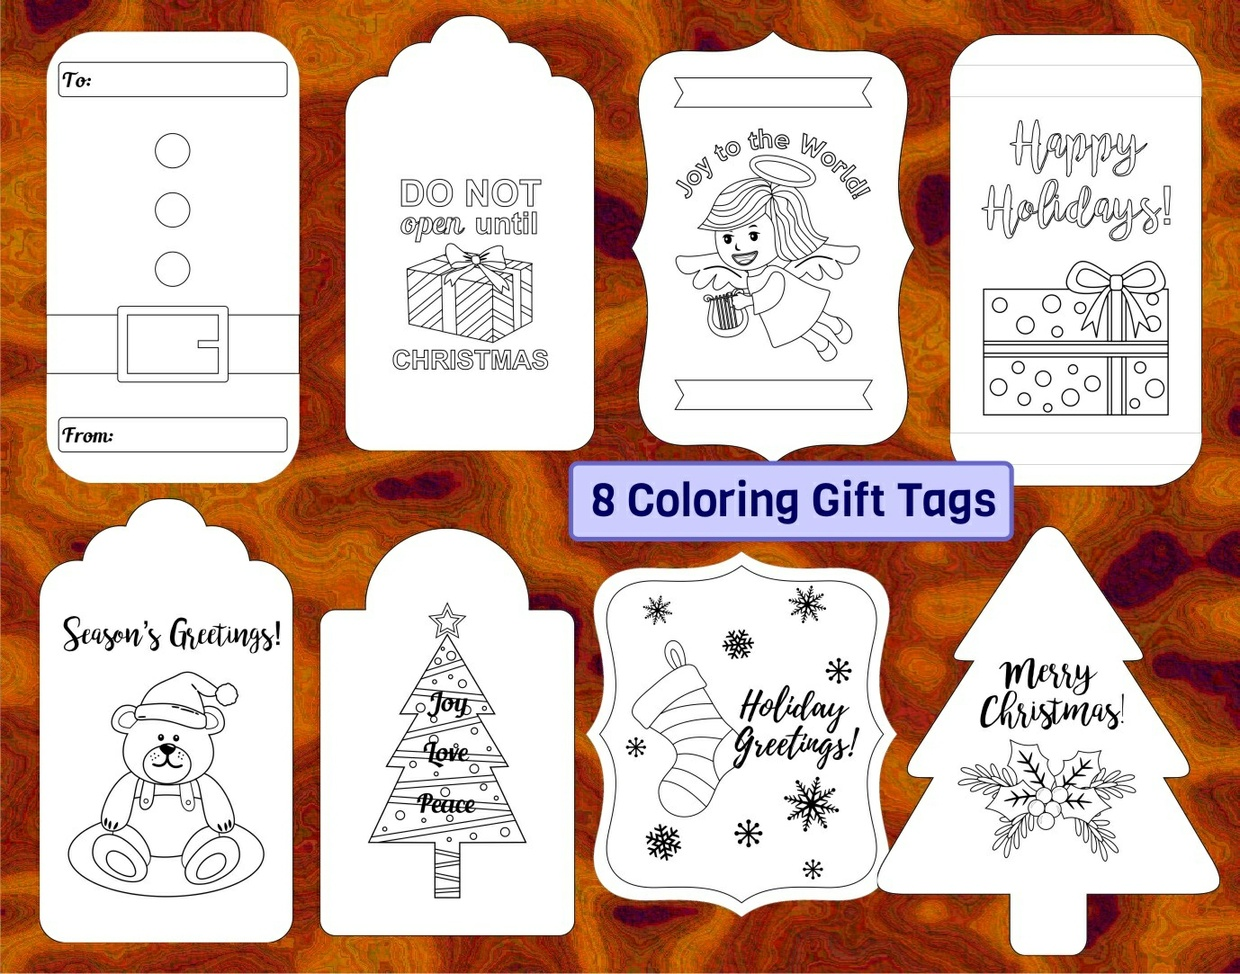 16 Christmas Gift Tags (plus 8 coloring tags)